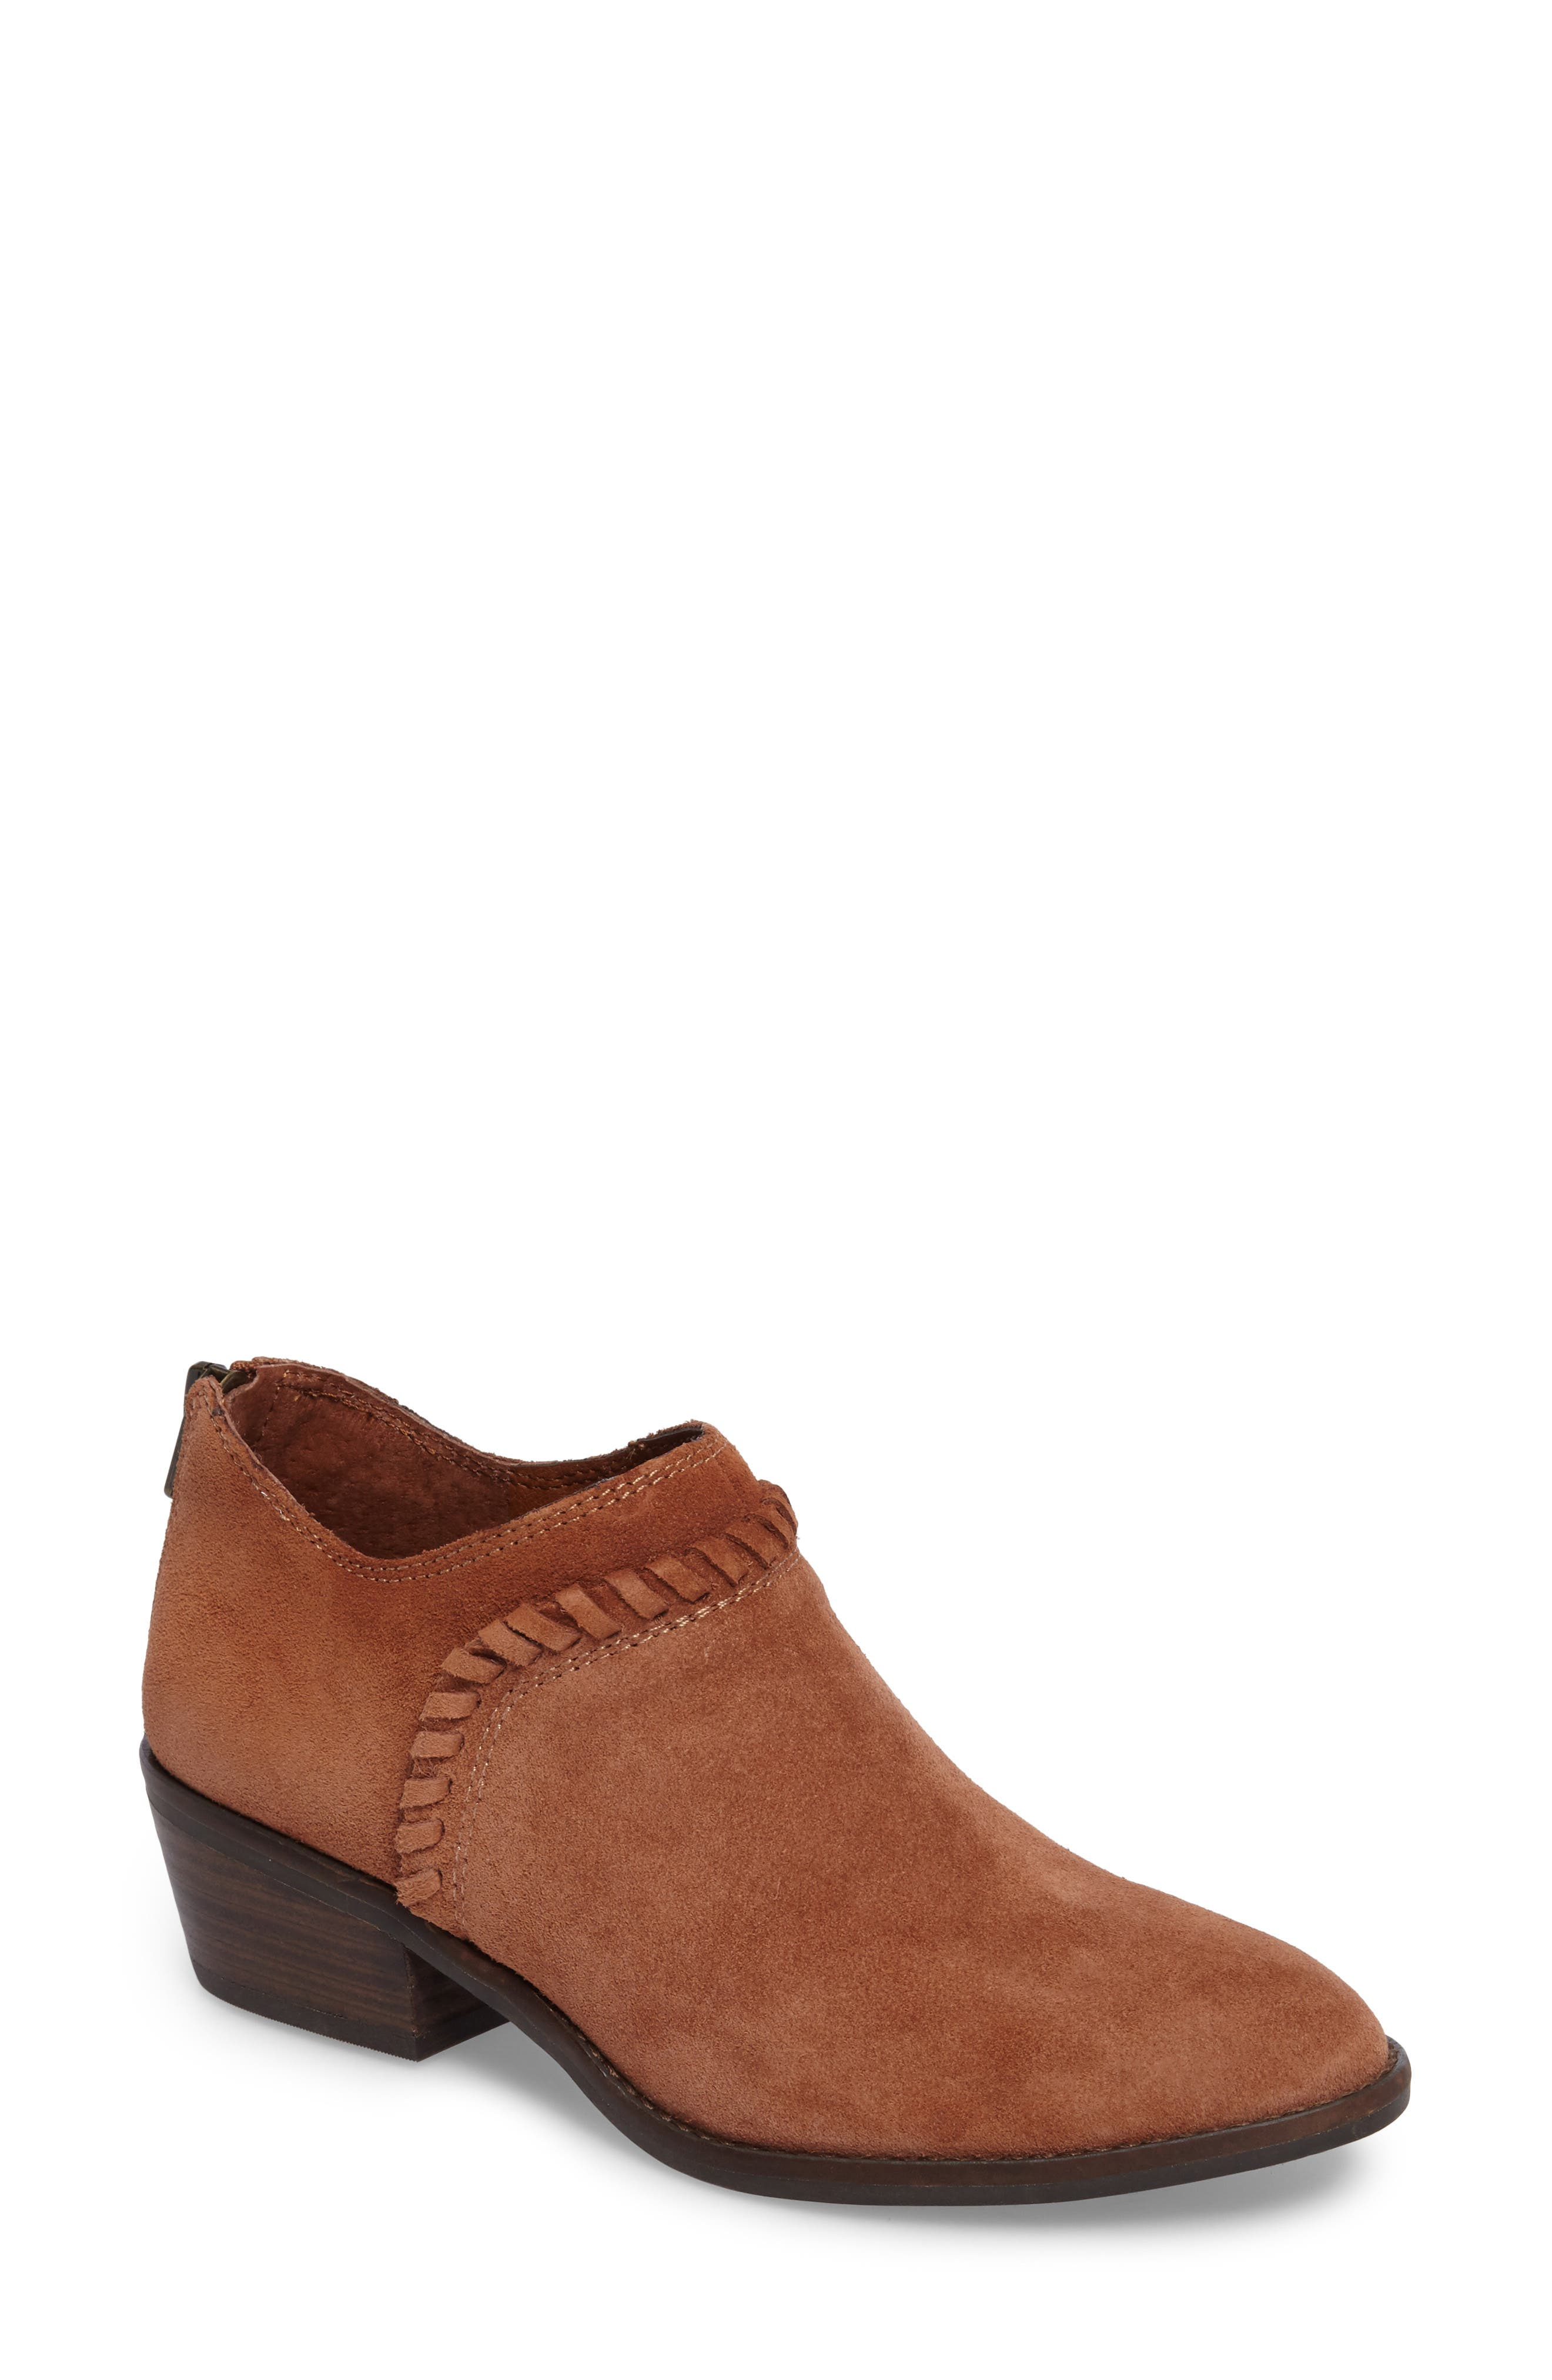 Fawnn Bootie,                         Main,                         color, Toffee Suede